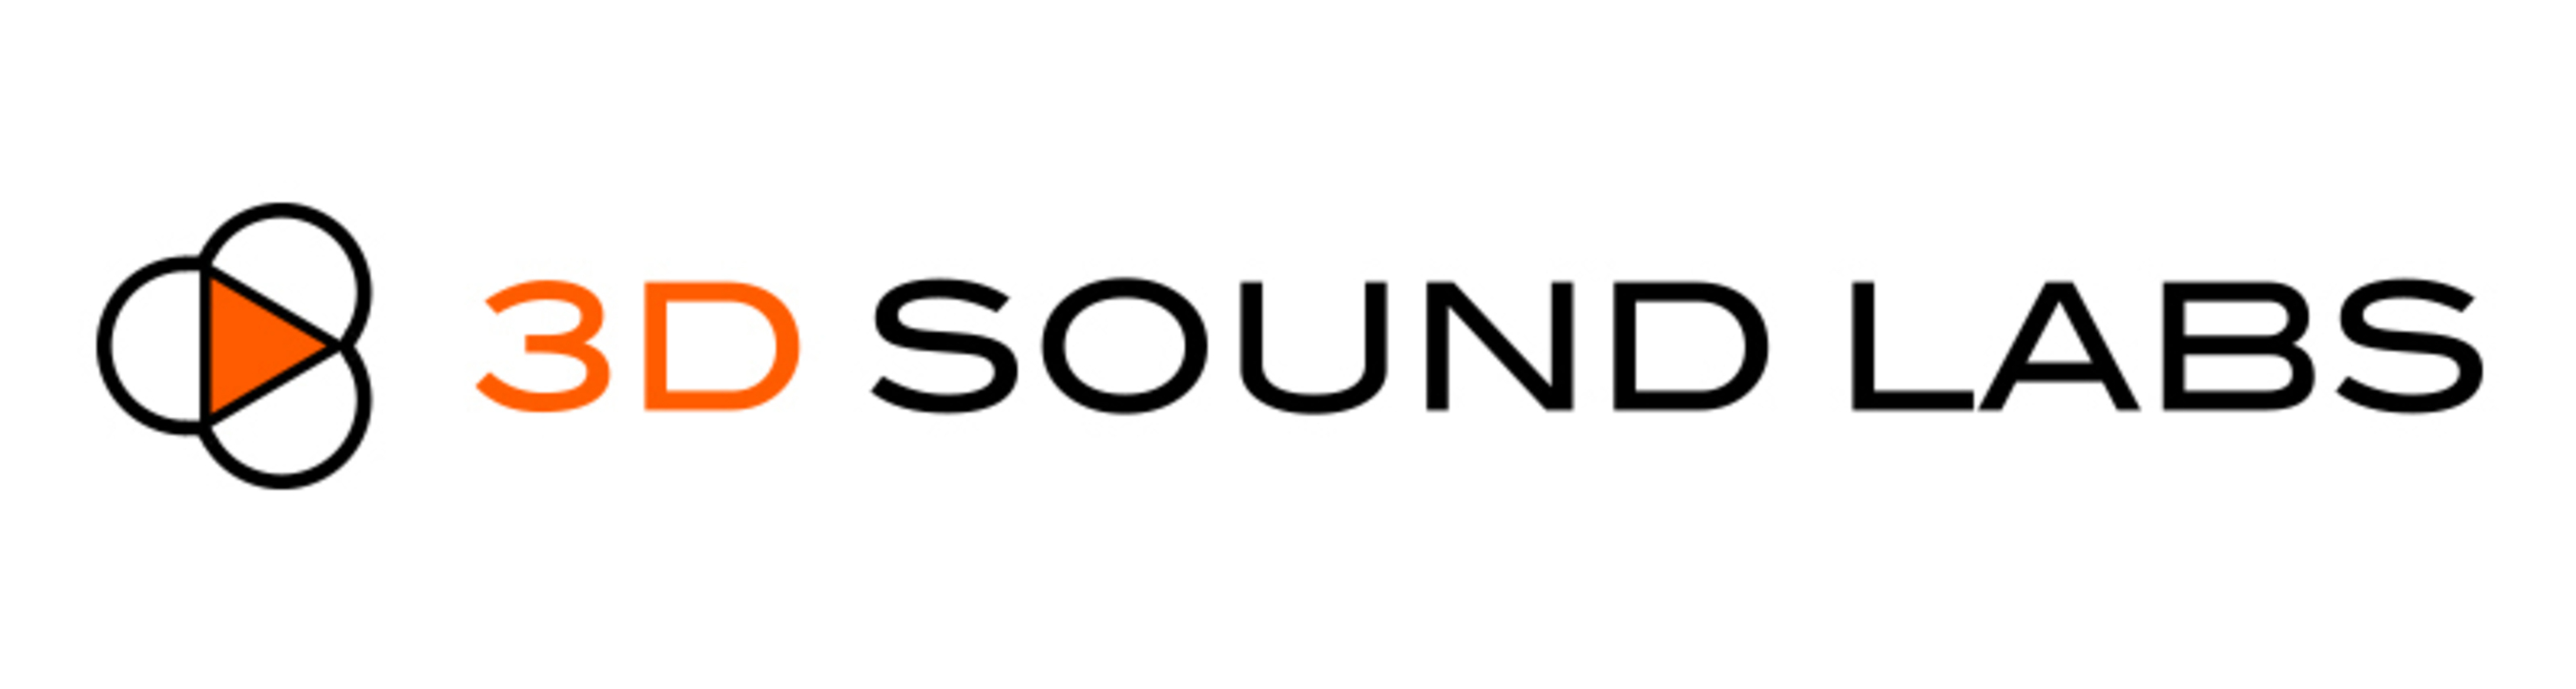 3D Sound Labs Announces the Availability of its High-Order-Ambisonics Solution for Mobile 360' VR Player